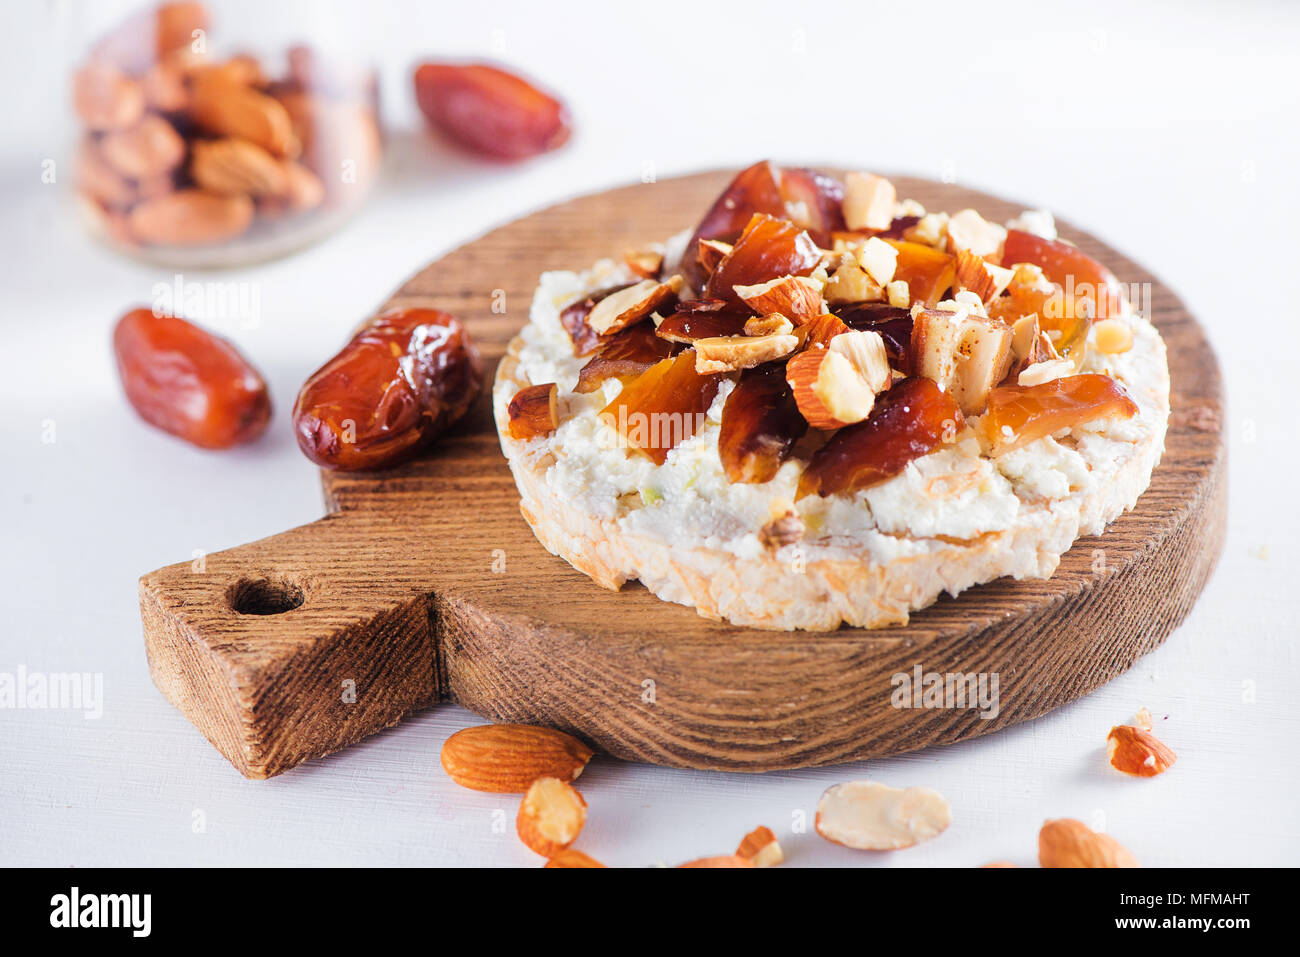 Healthy snack with crisp bread, dates, soft creme cheese, almond and nuts. Easy breakfast close-up on a white background with copy space. - Stock Image